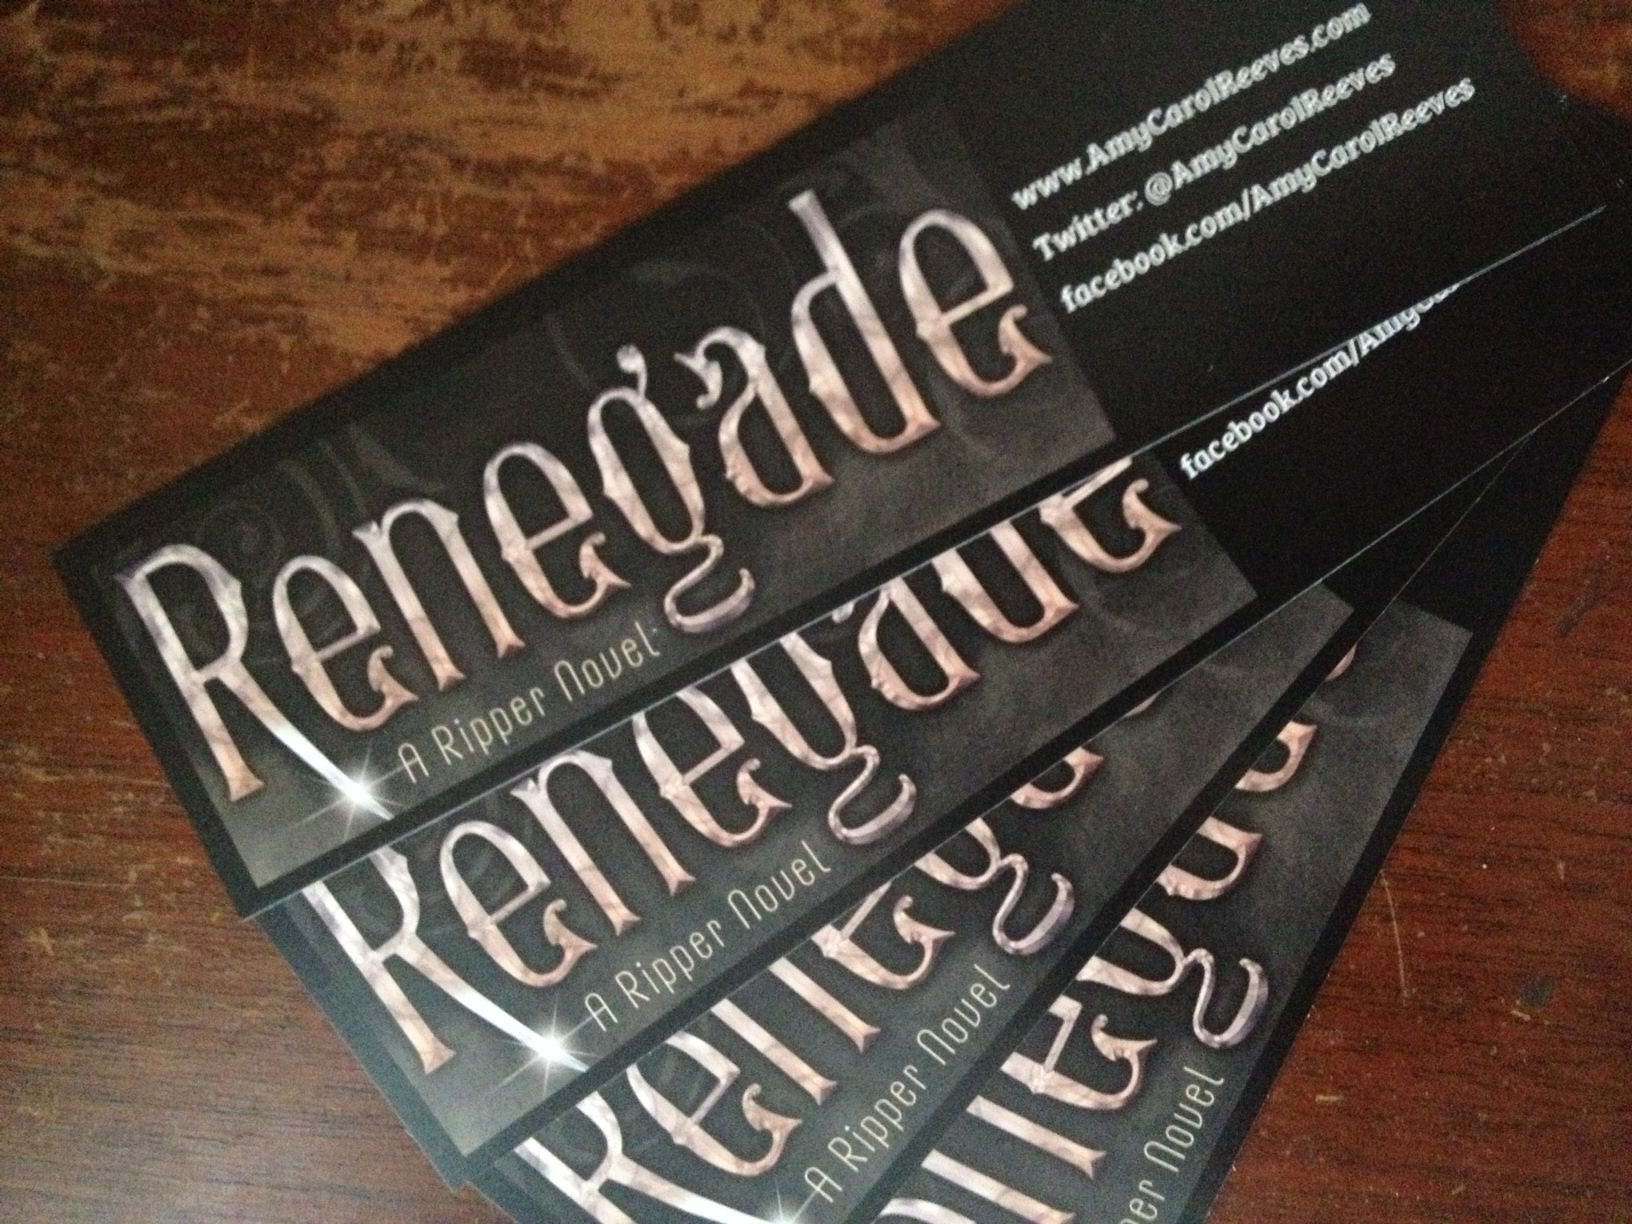 Renegade - bookmarks